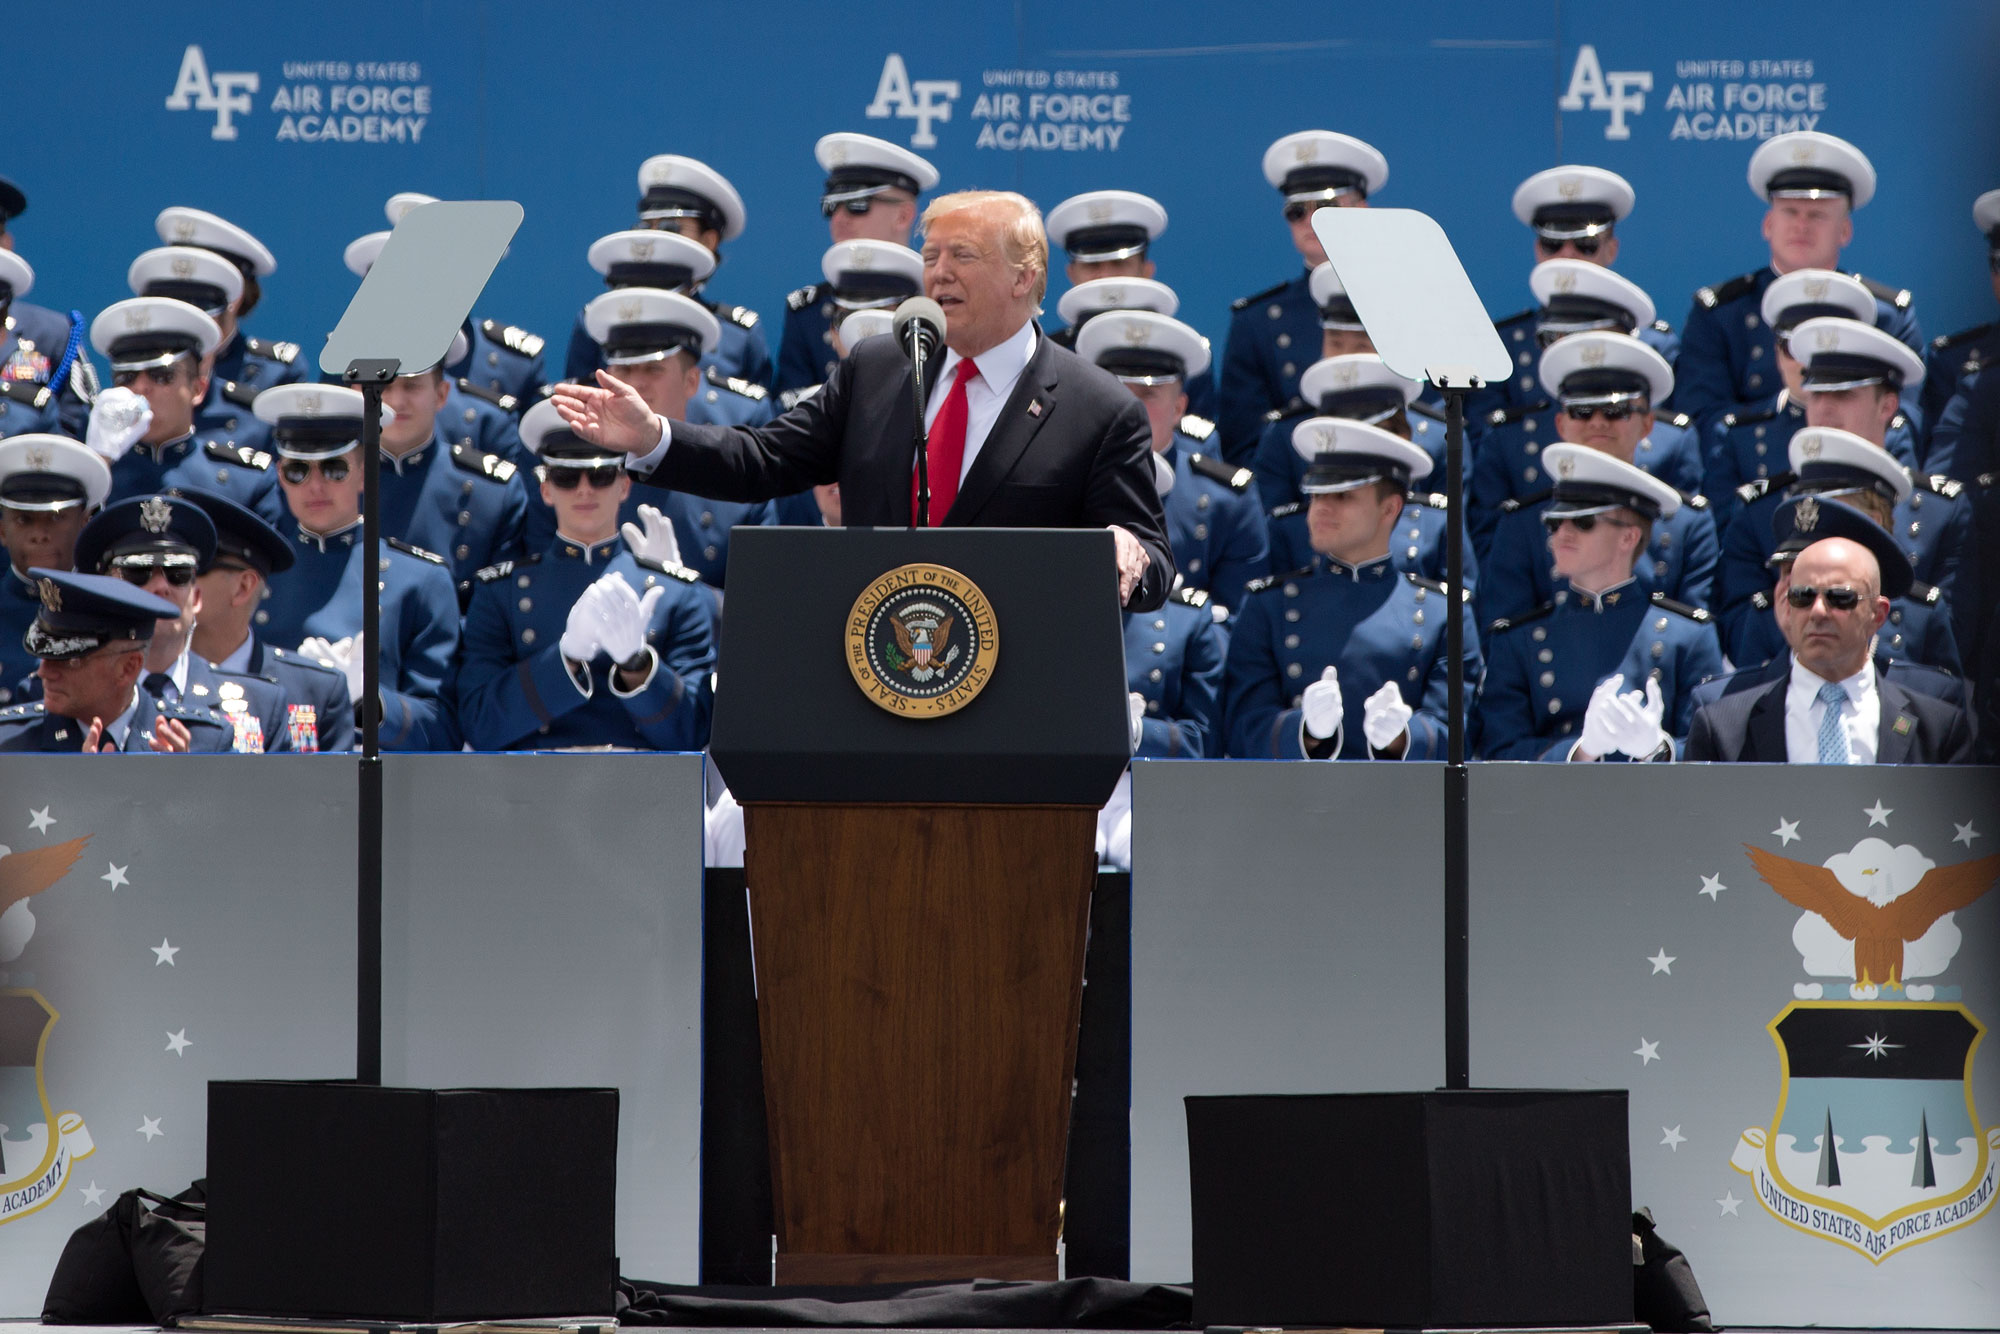 President Donald Trump delivers the commencement address at U.S. Air Force Academy graduation, May 30, 2019.